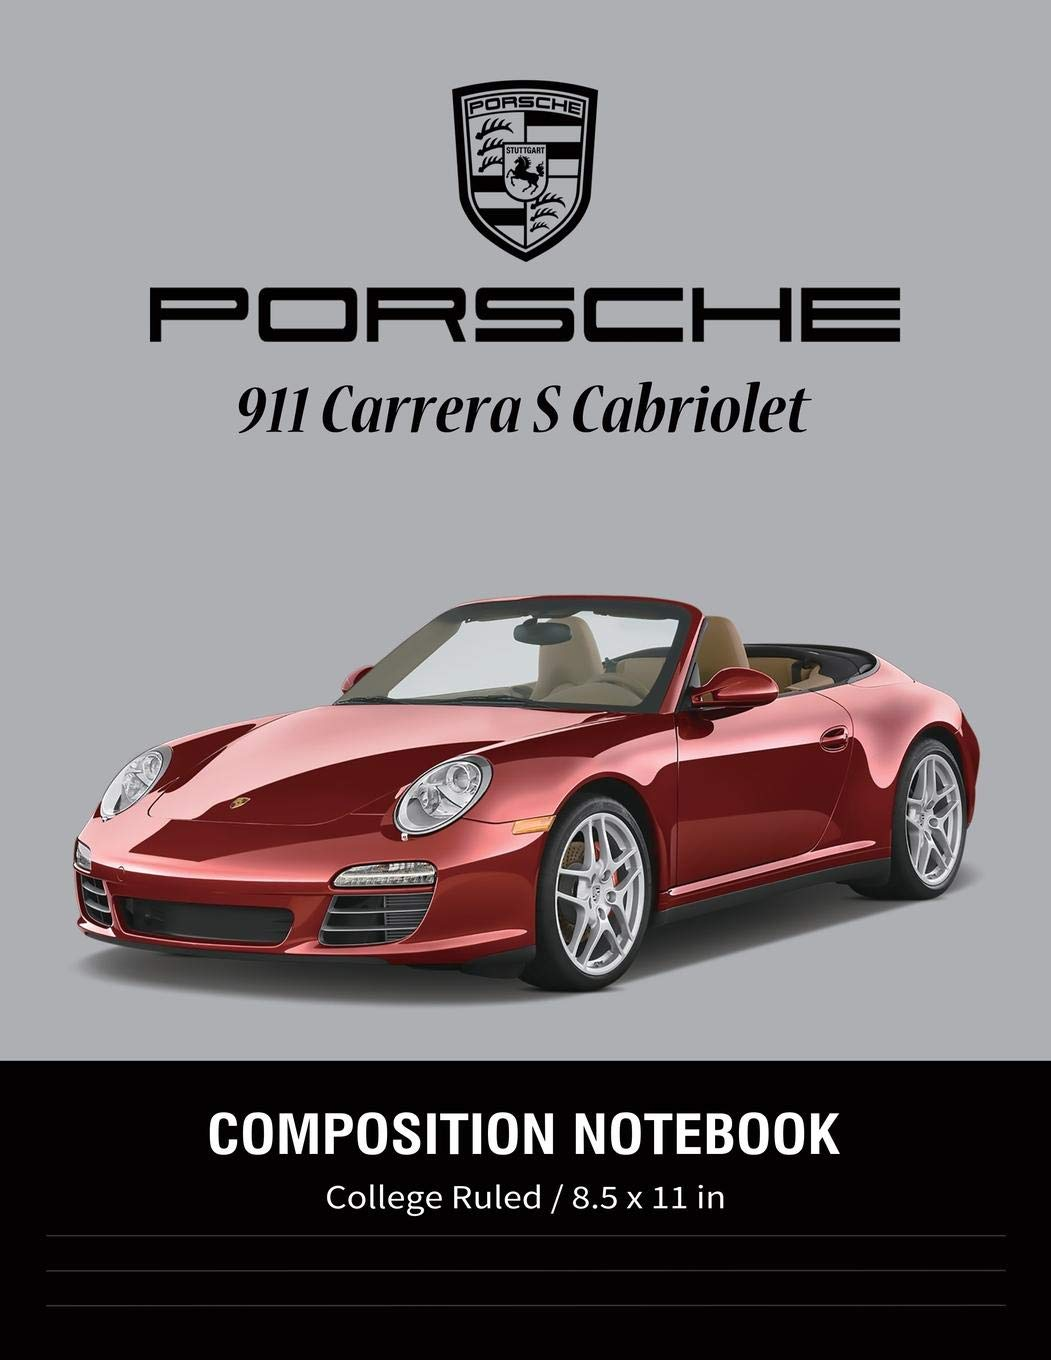 Buy Porsche 911 Carrera S Cabriolet Composition Notebook College Ruled 8 5 X 11 In Super Cars Notebook Lined Composition Book Diary Journal Notebook Book Online At Low Prices In India